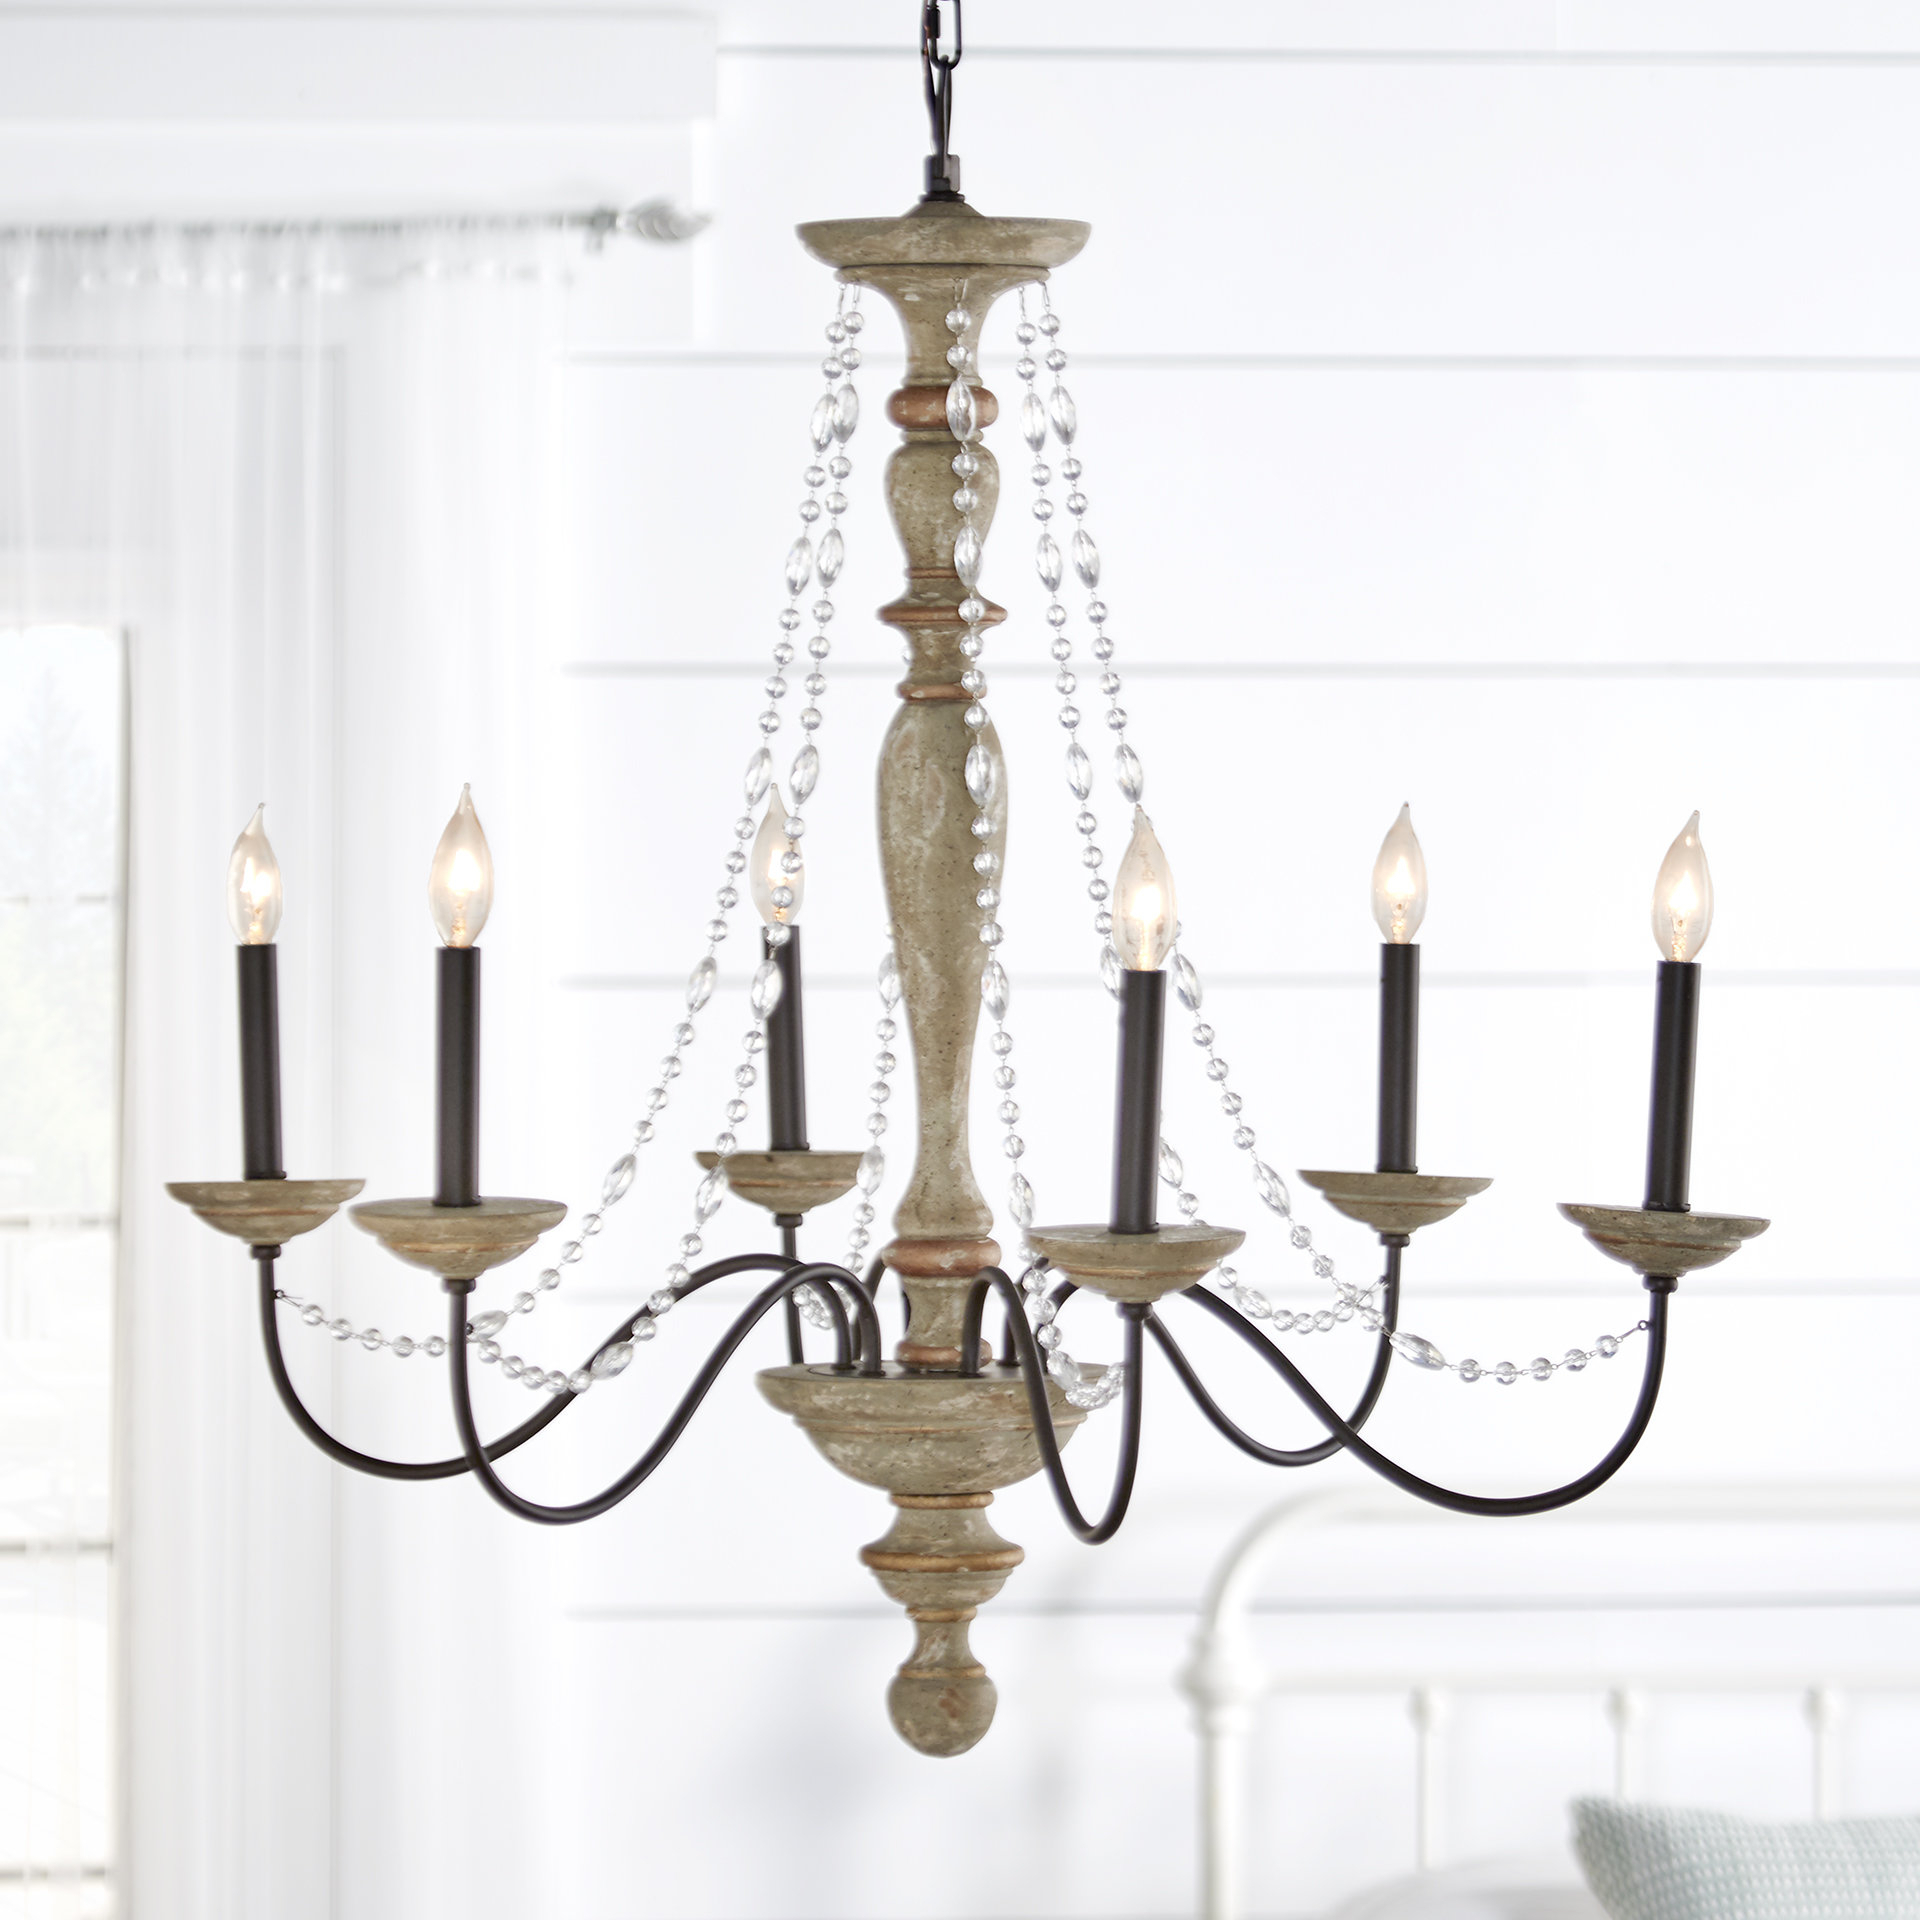 Three Posts Brennon 6 Light Candle Style Chandelier Intended For Recent Hamza 6 Light Candle Style Chandeliers (View 7 of 20)